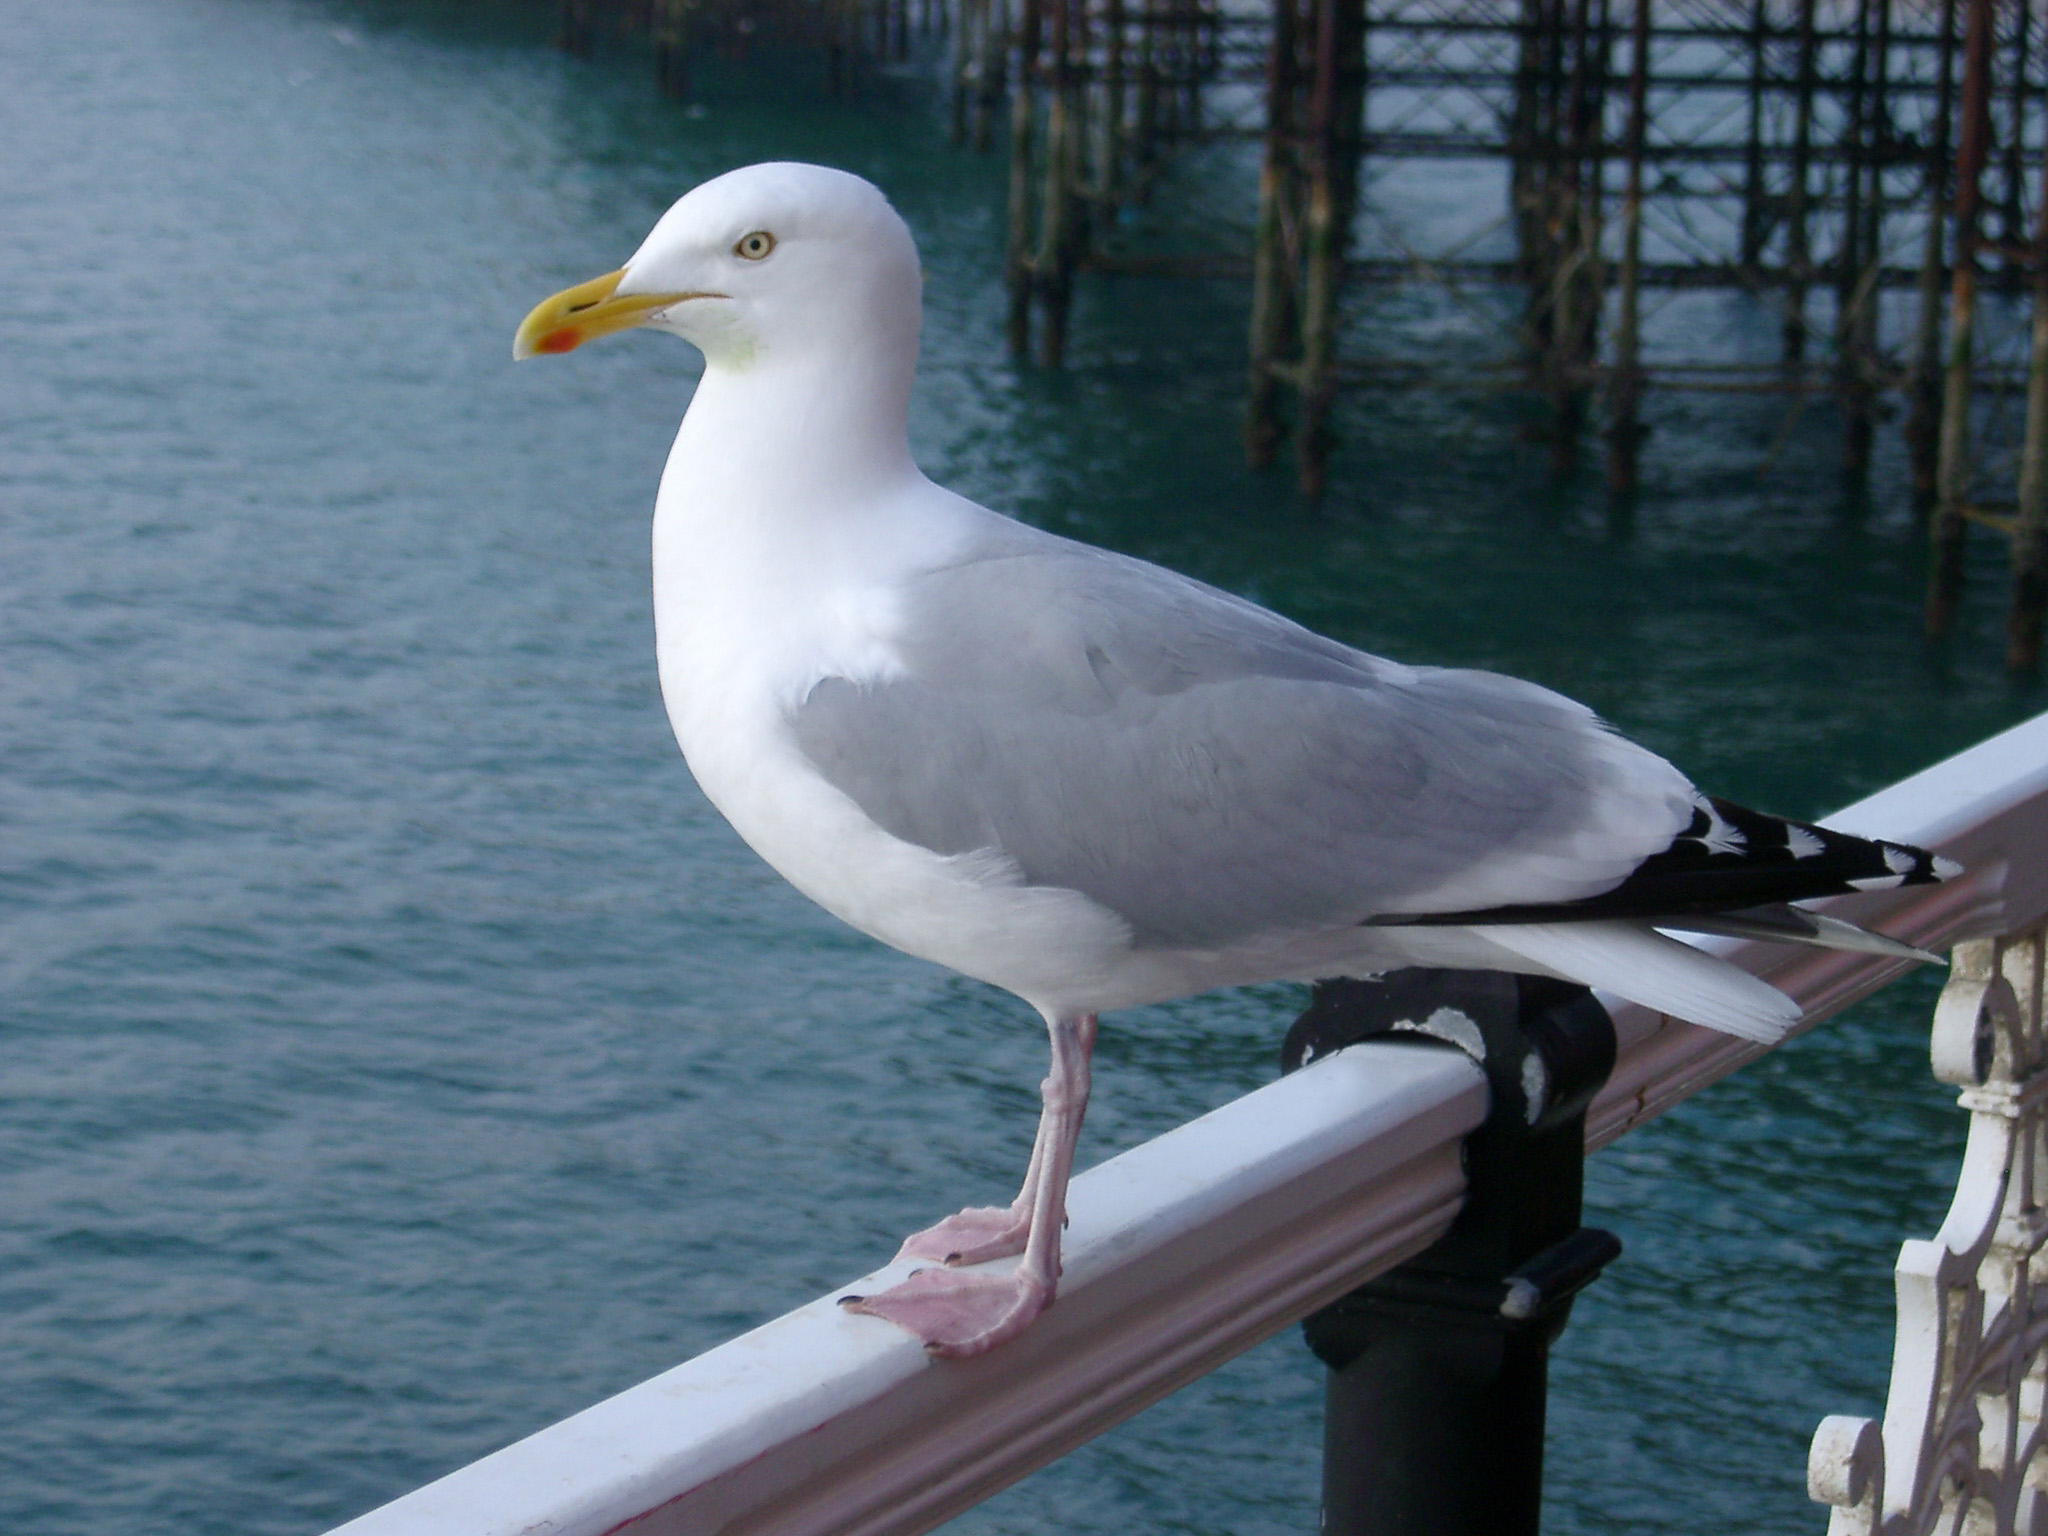 Seagull perched on a railing overlooking a calm sea with reflections, close up side view